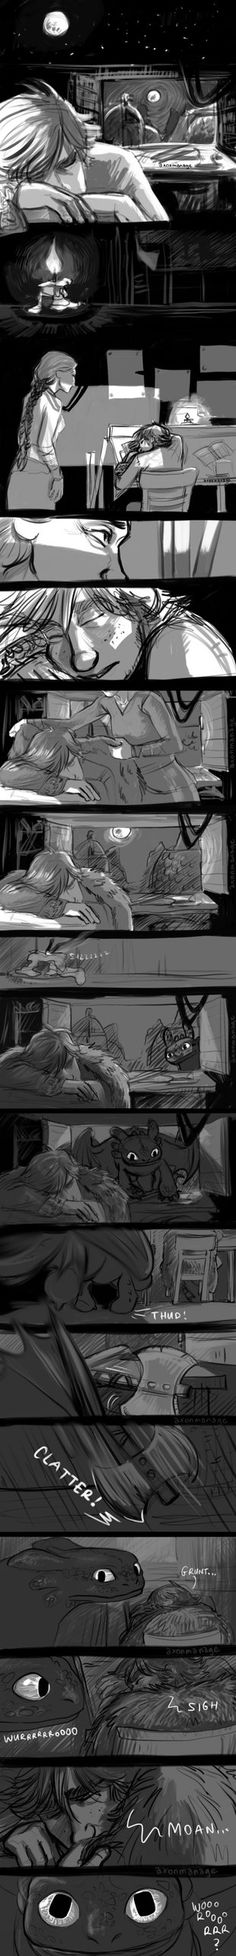 Tucked In - Part One by axondrive on DeviantArt